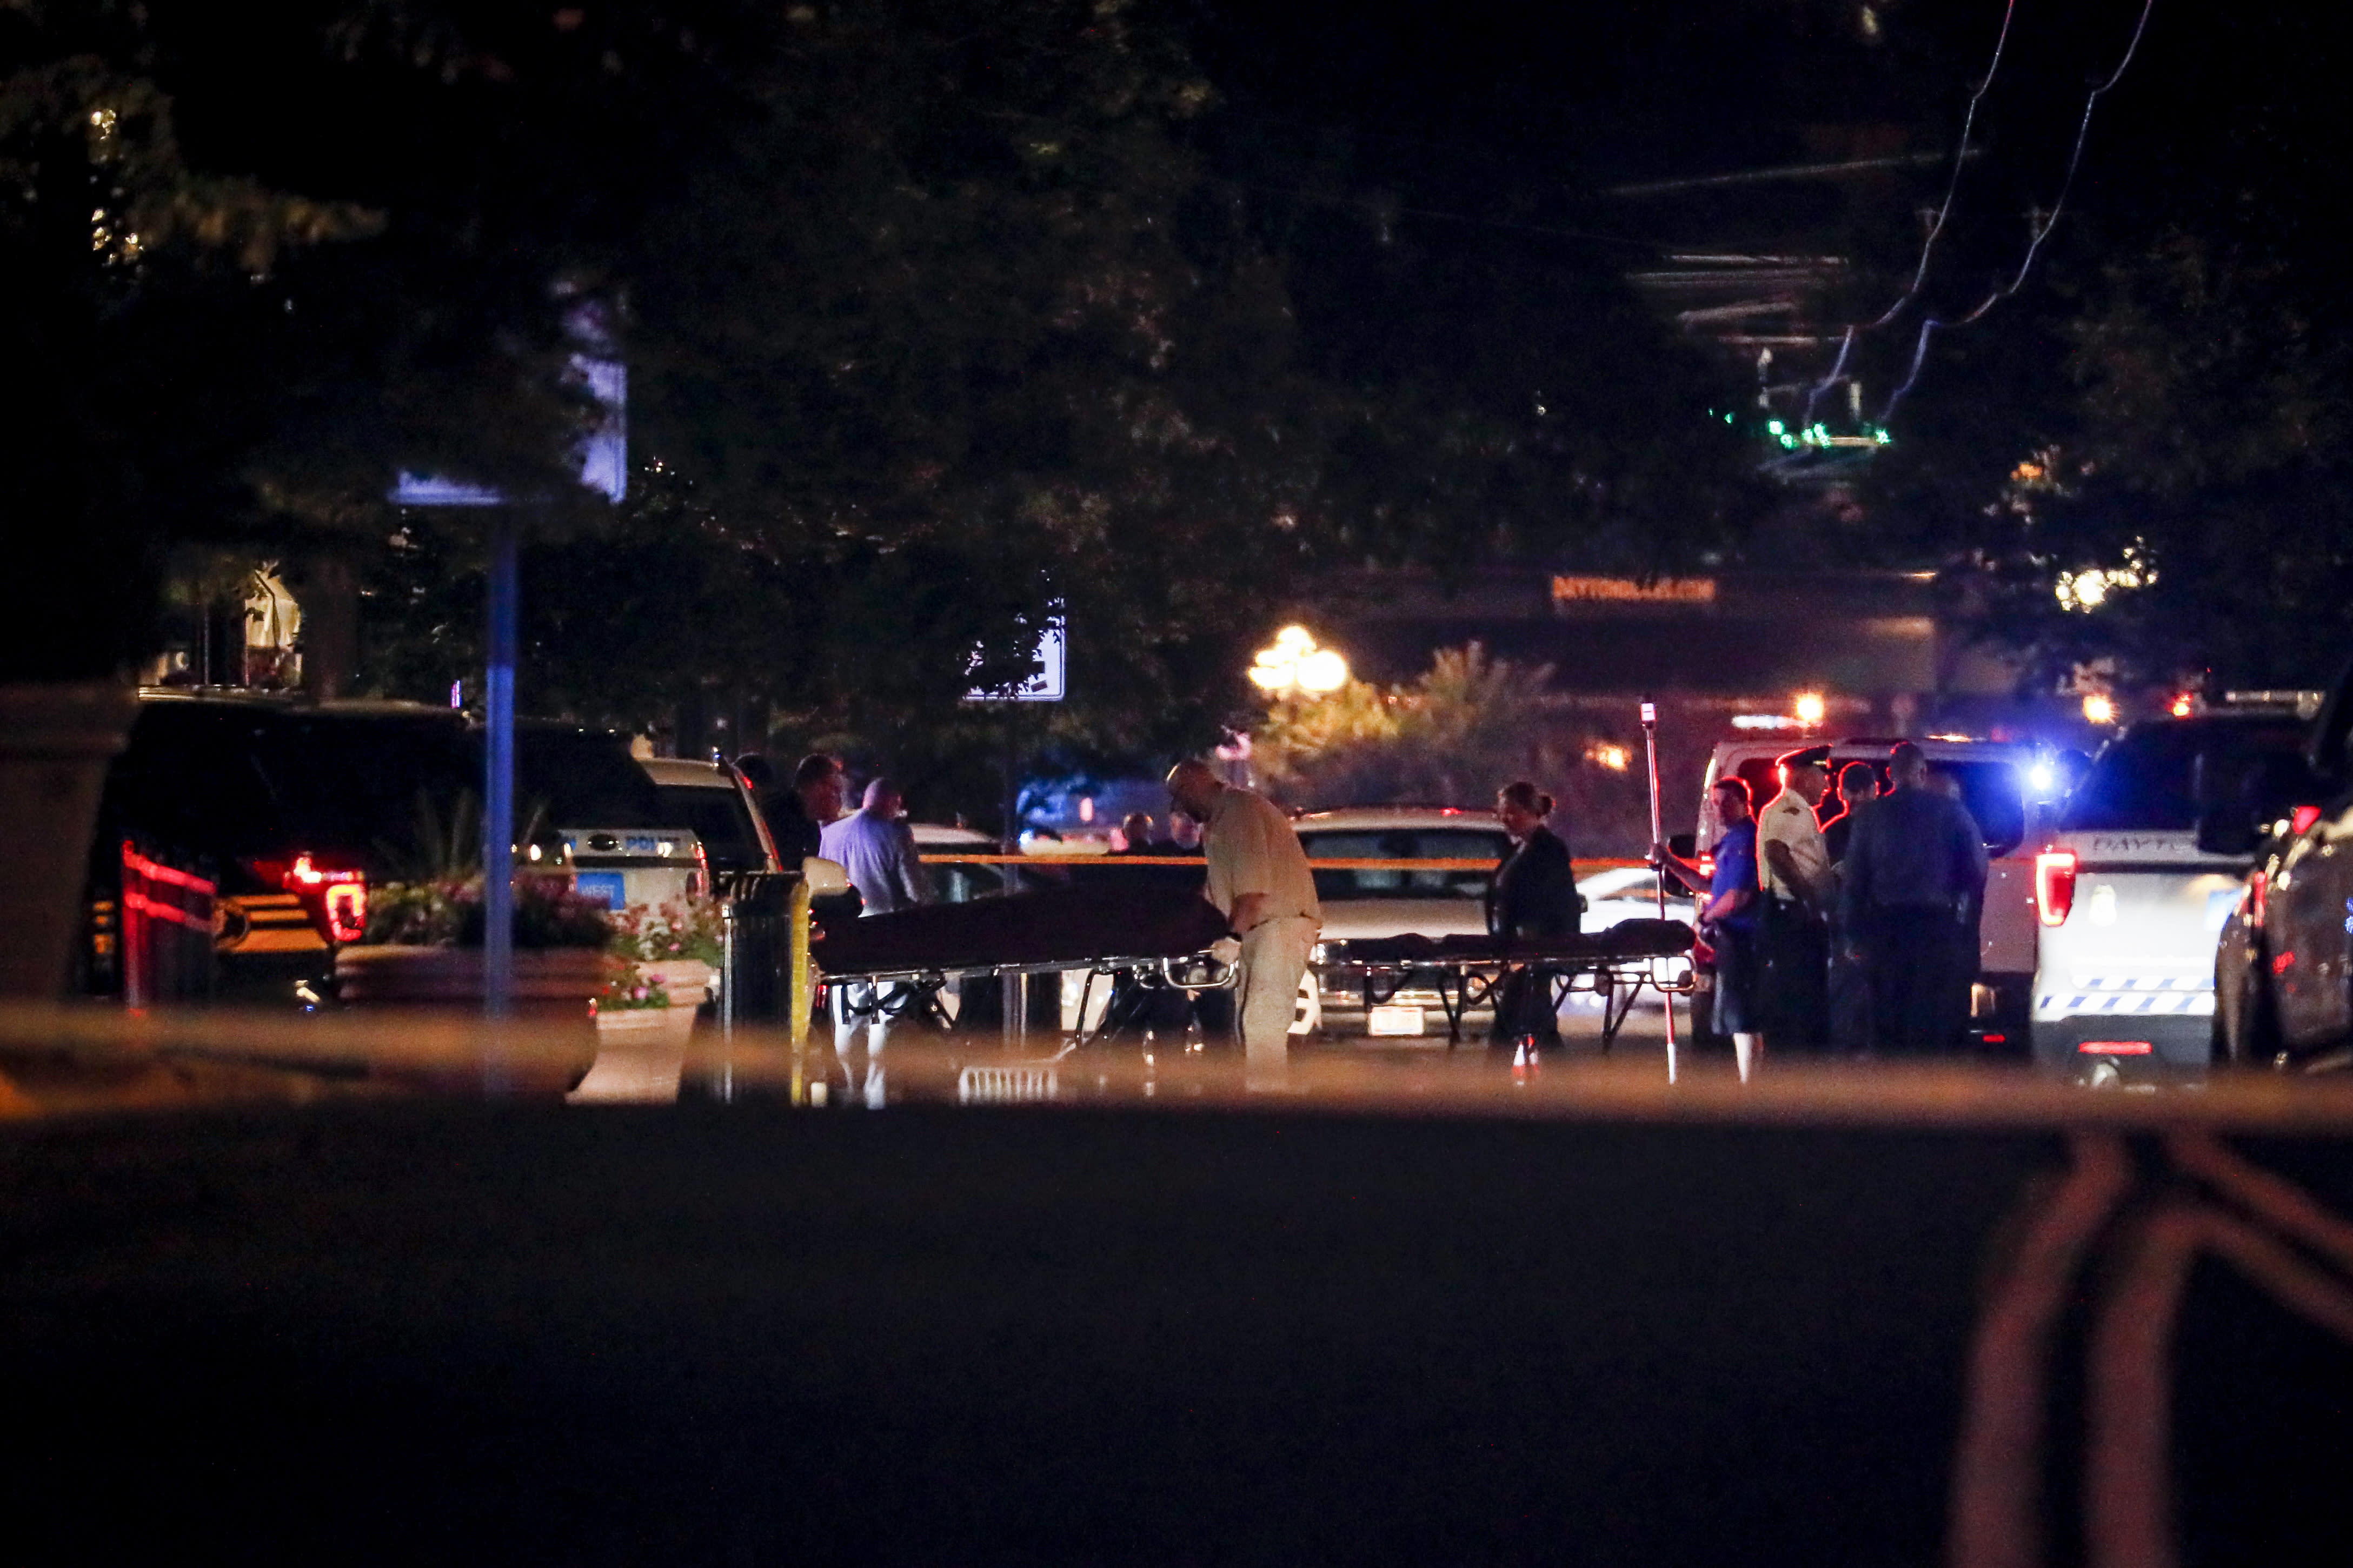 Multiple fatalities reported from shooting in Dayton, Ohio